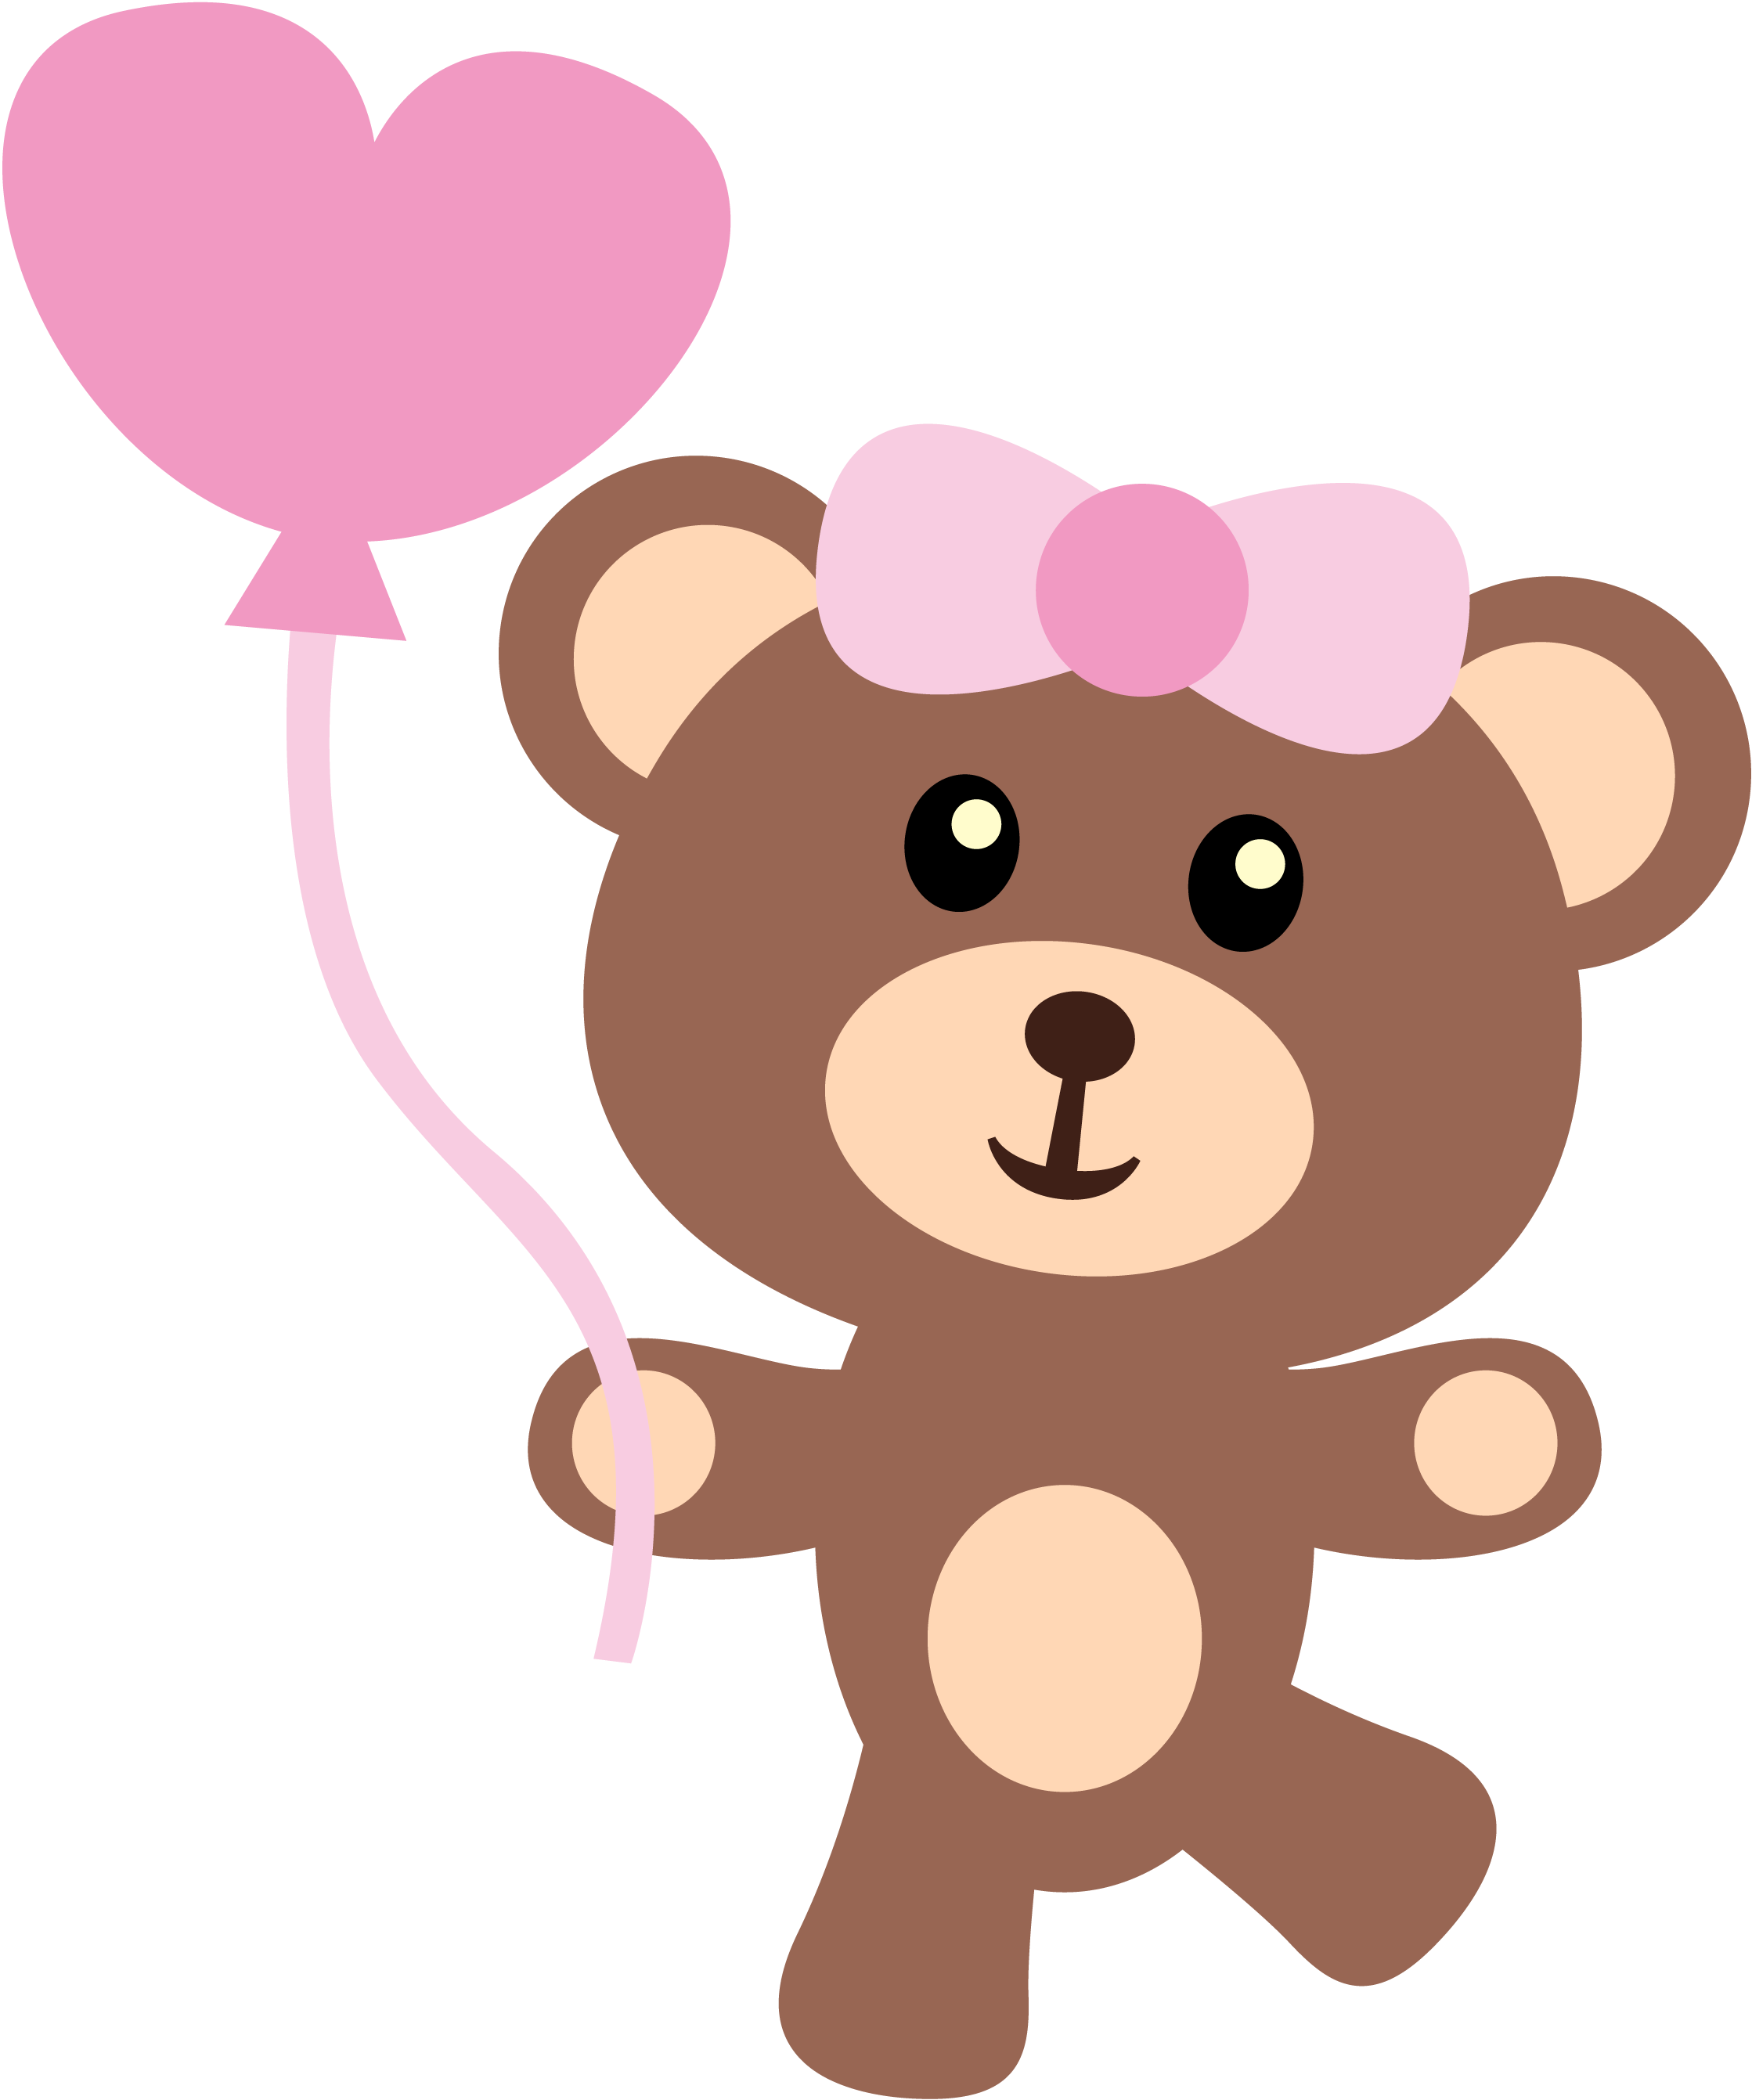 Bear with heart clipart vector free download Pin by Piatty Henao on BABY GIRL | Pinterest vector free download